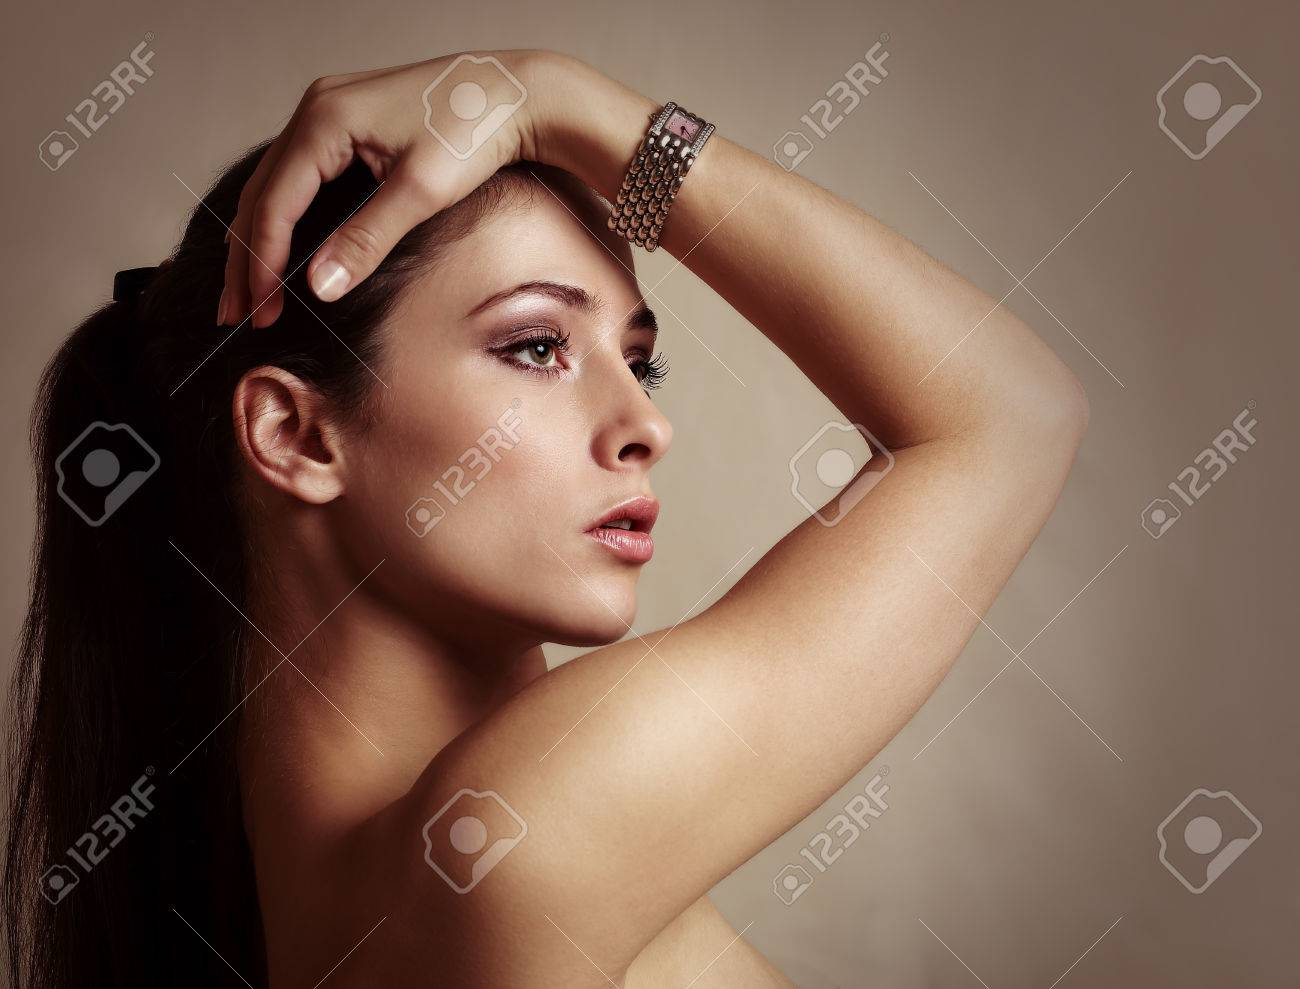 Sexy beautiful woman with modern watch on the hand  Color portrait Stock Photo - 24255518